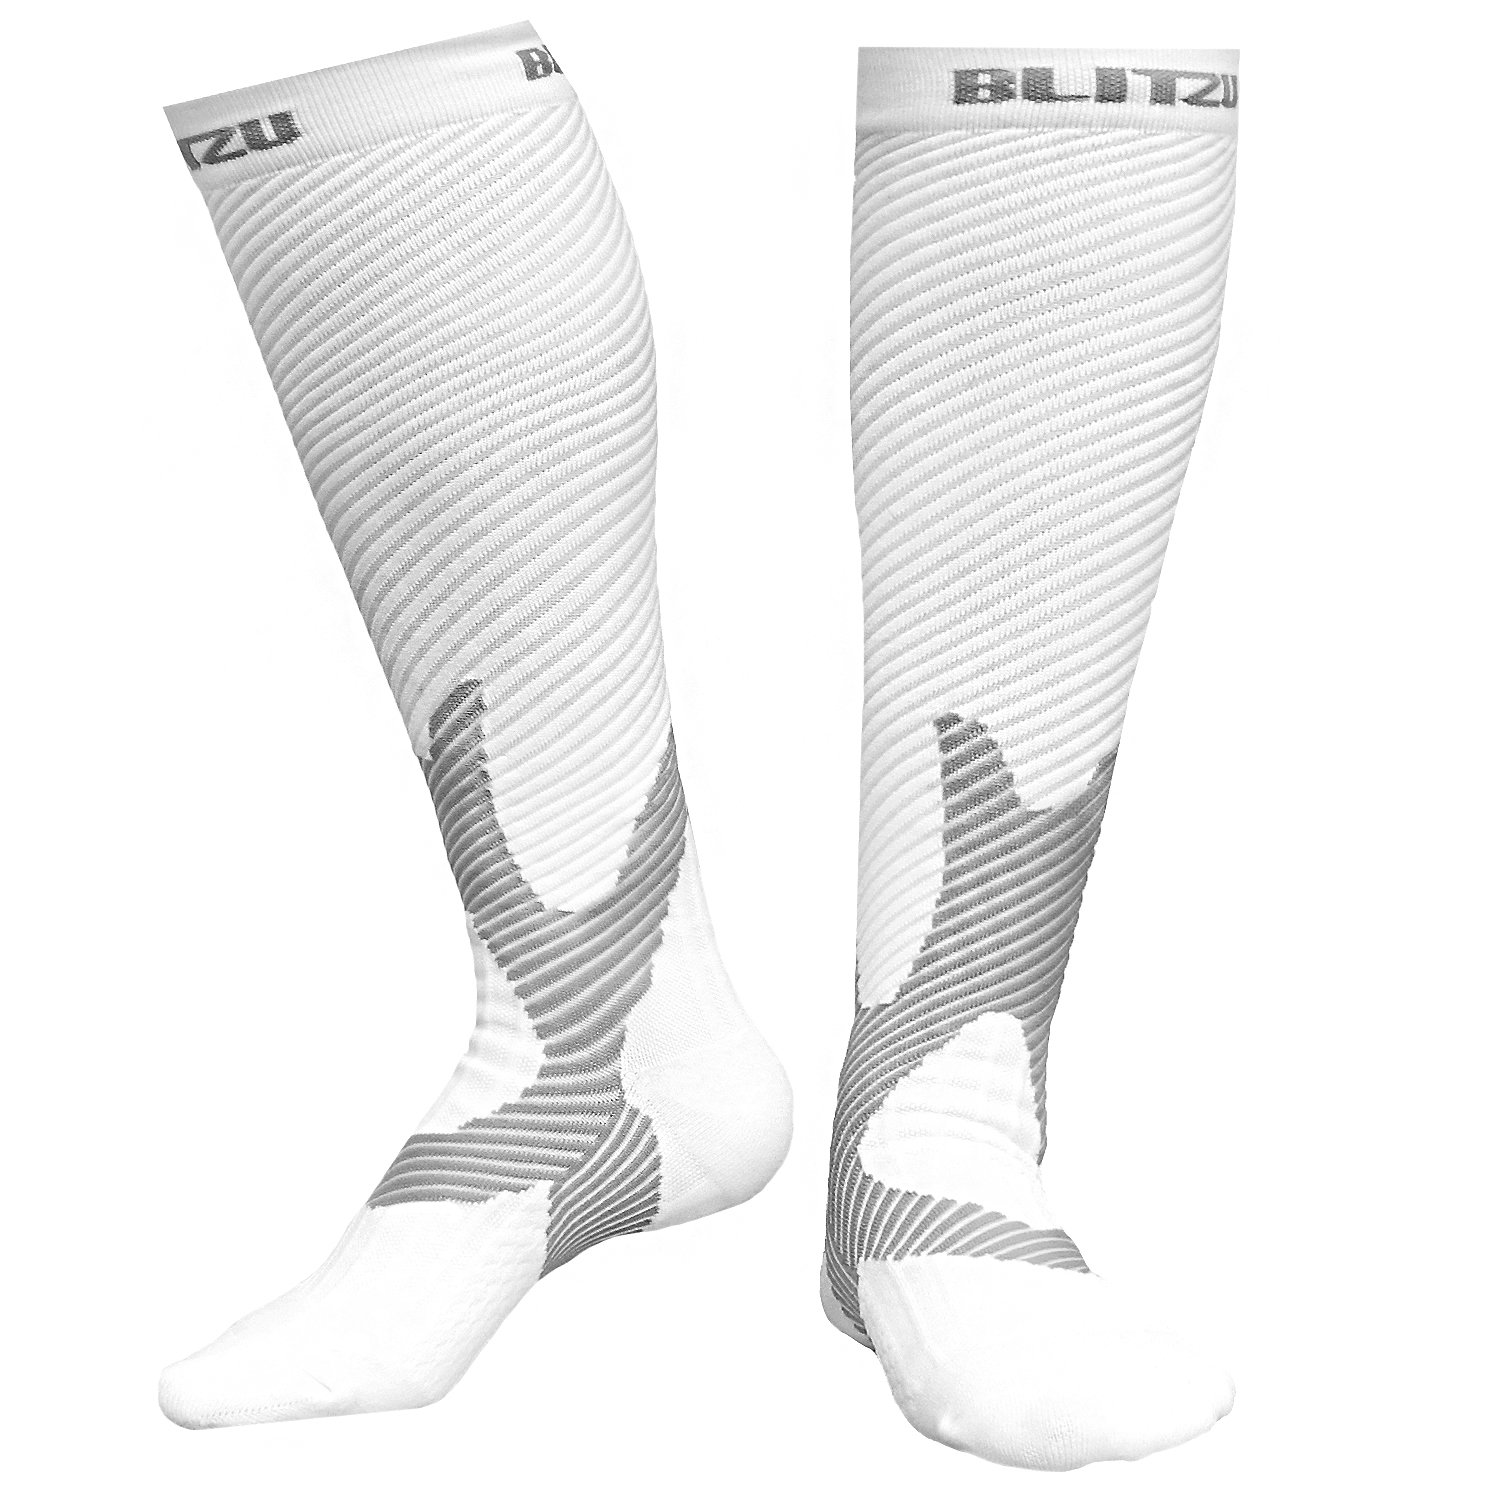 Blitzu Compression Socks 20-30mmHg for Men & Women BEST Recovery Performance Stockings for Running, Medical, Athletic, Edema, Diabetic, Varicose Veins, Travel, Pregnancy, Relief Shin Splint White L/XL by BLITZU (Image #2)